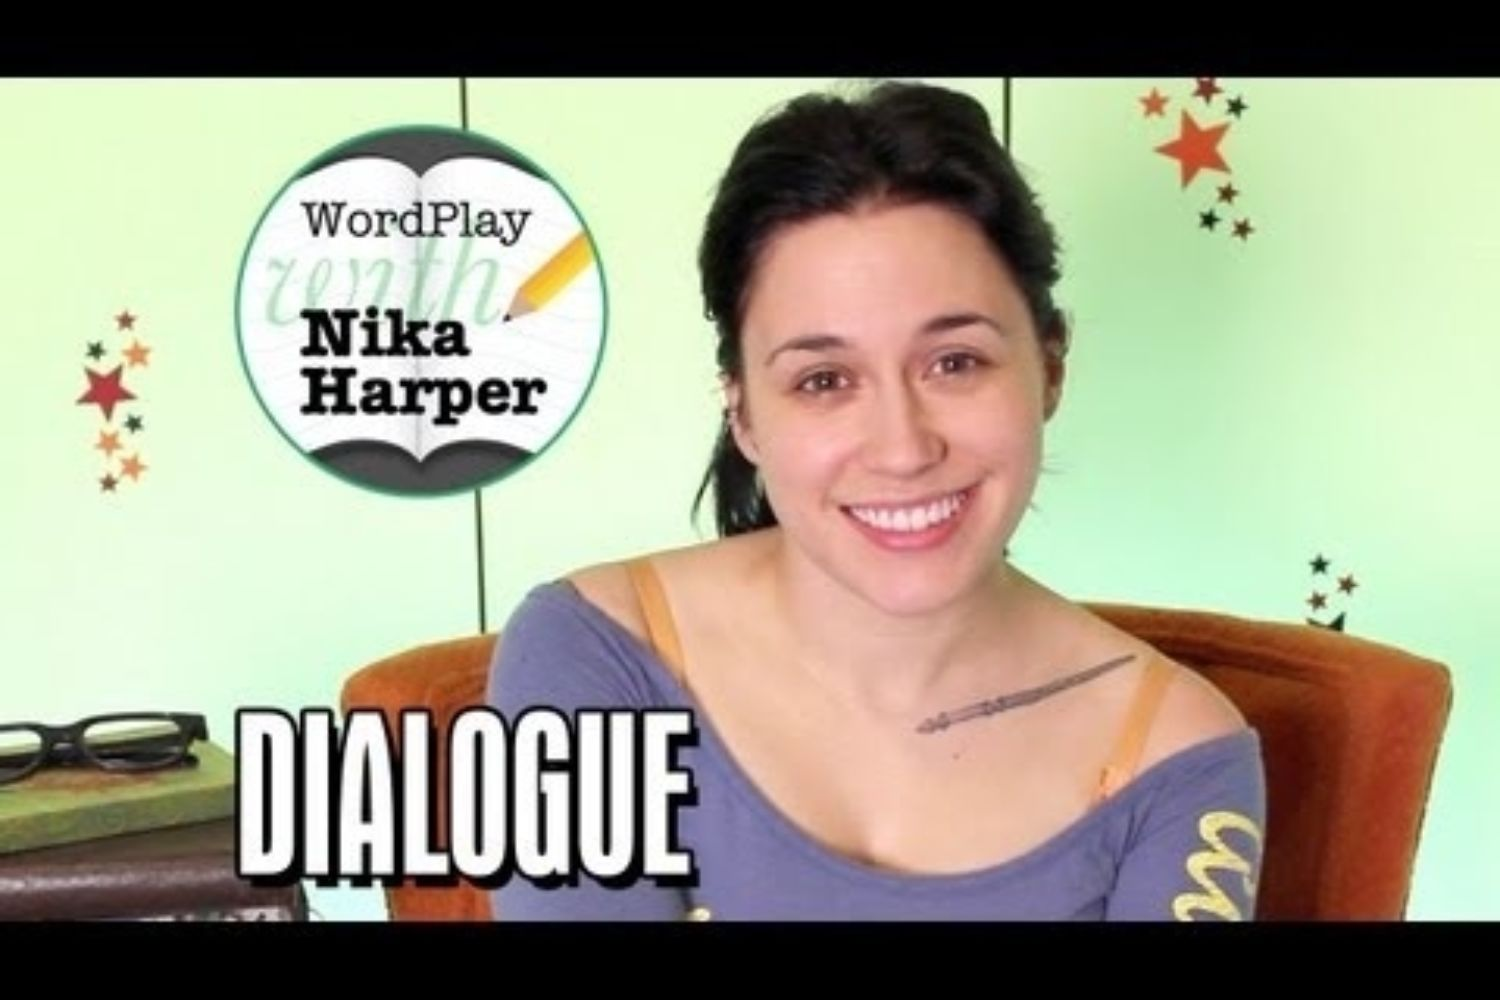 Wordplay with Nika Harper #4: Let's Talk About Dialogue (Video)